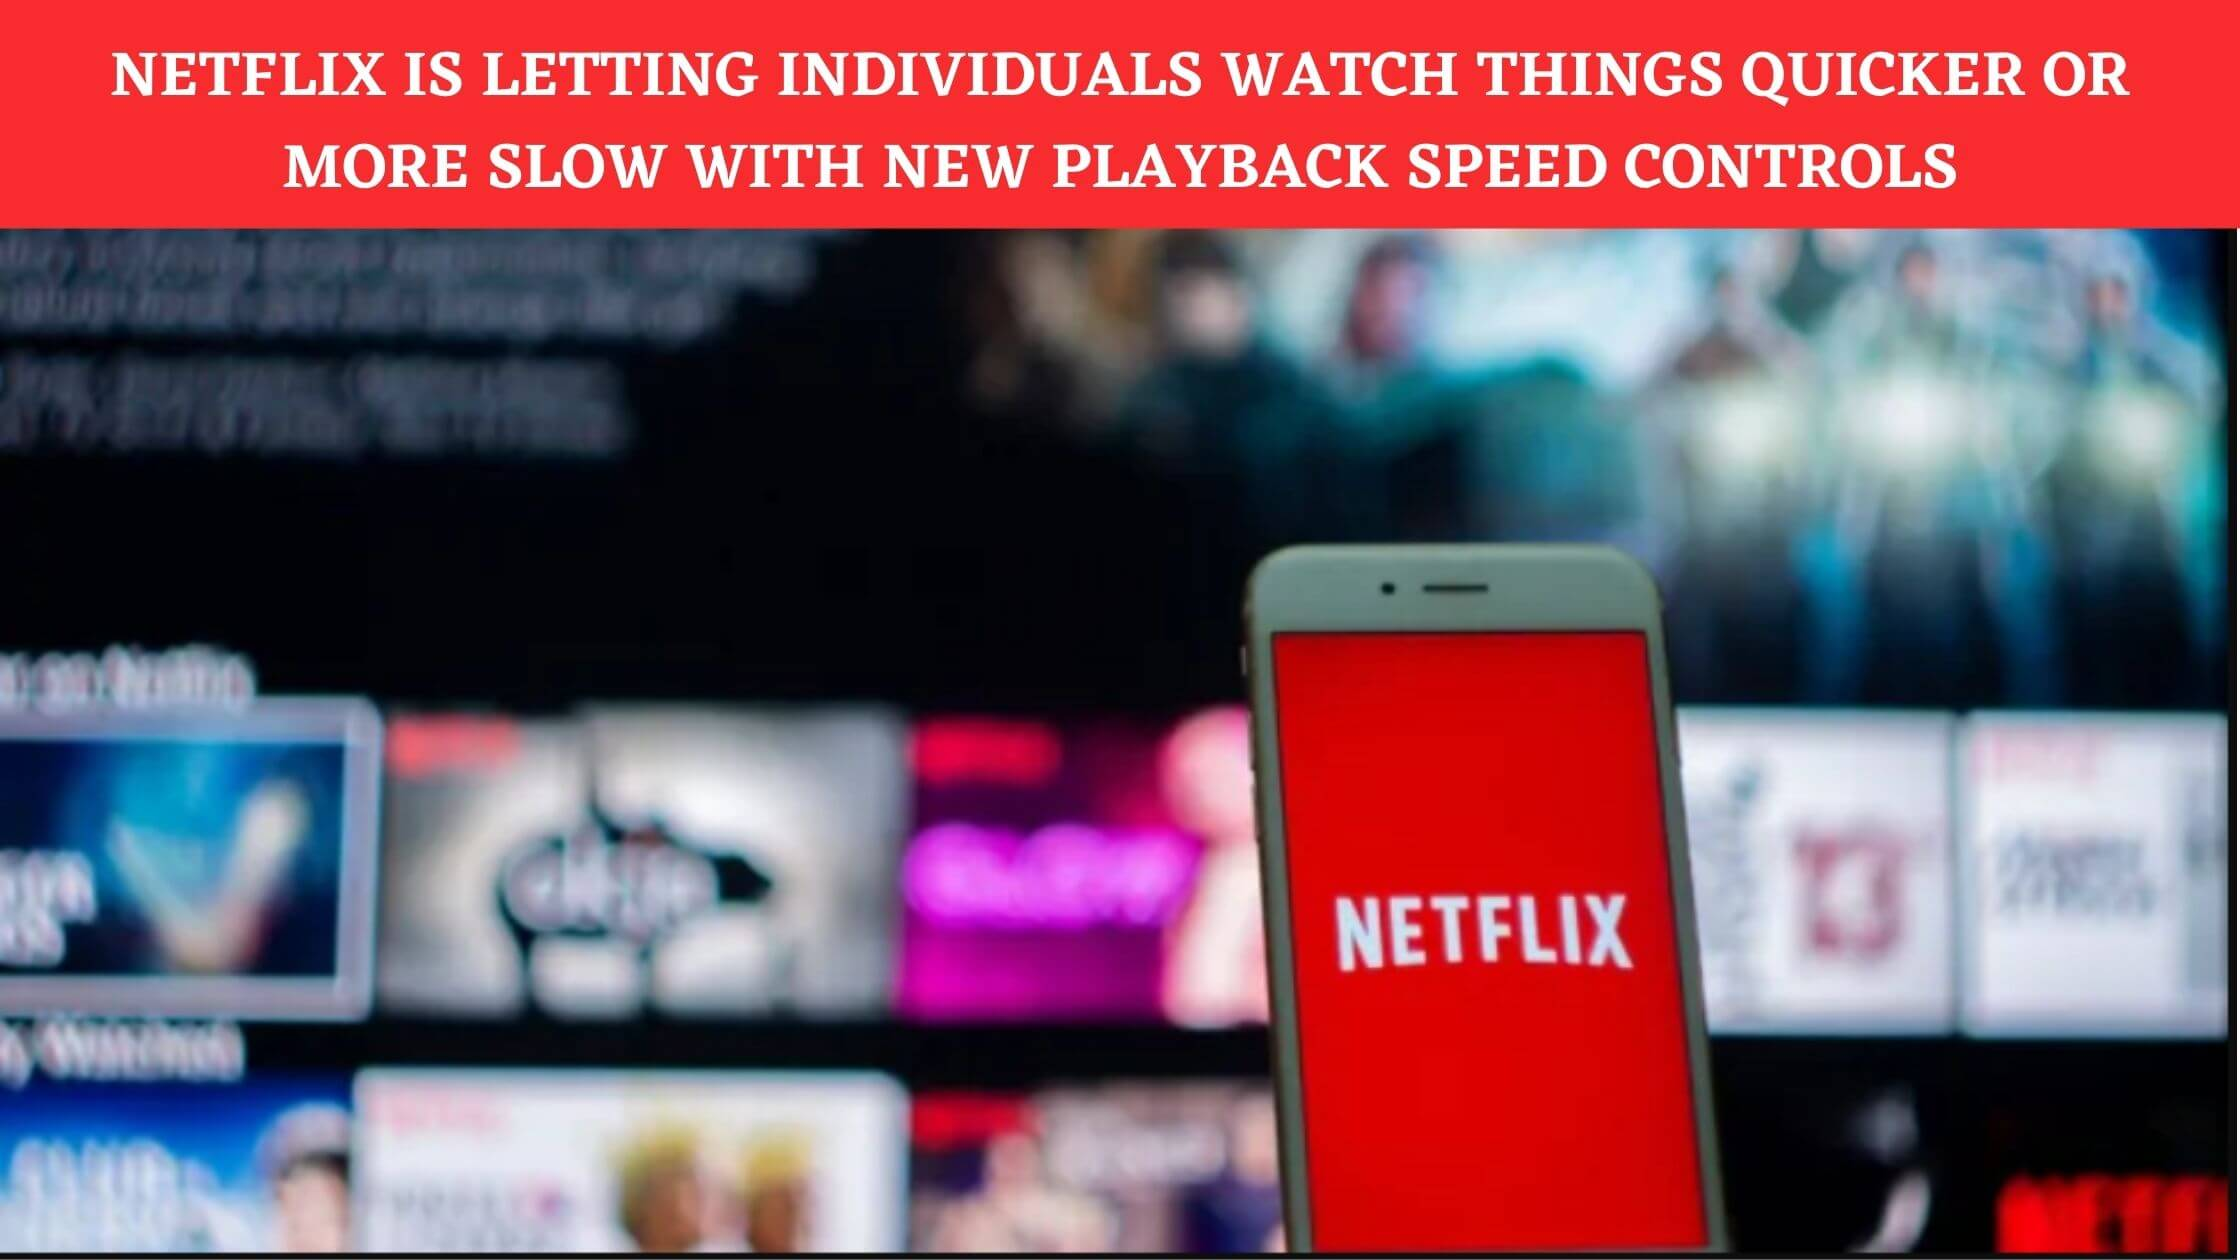 Netflix is letting individuals watch things quicker or more slow with new playback speed controls